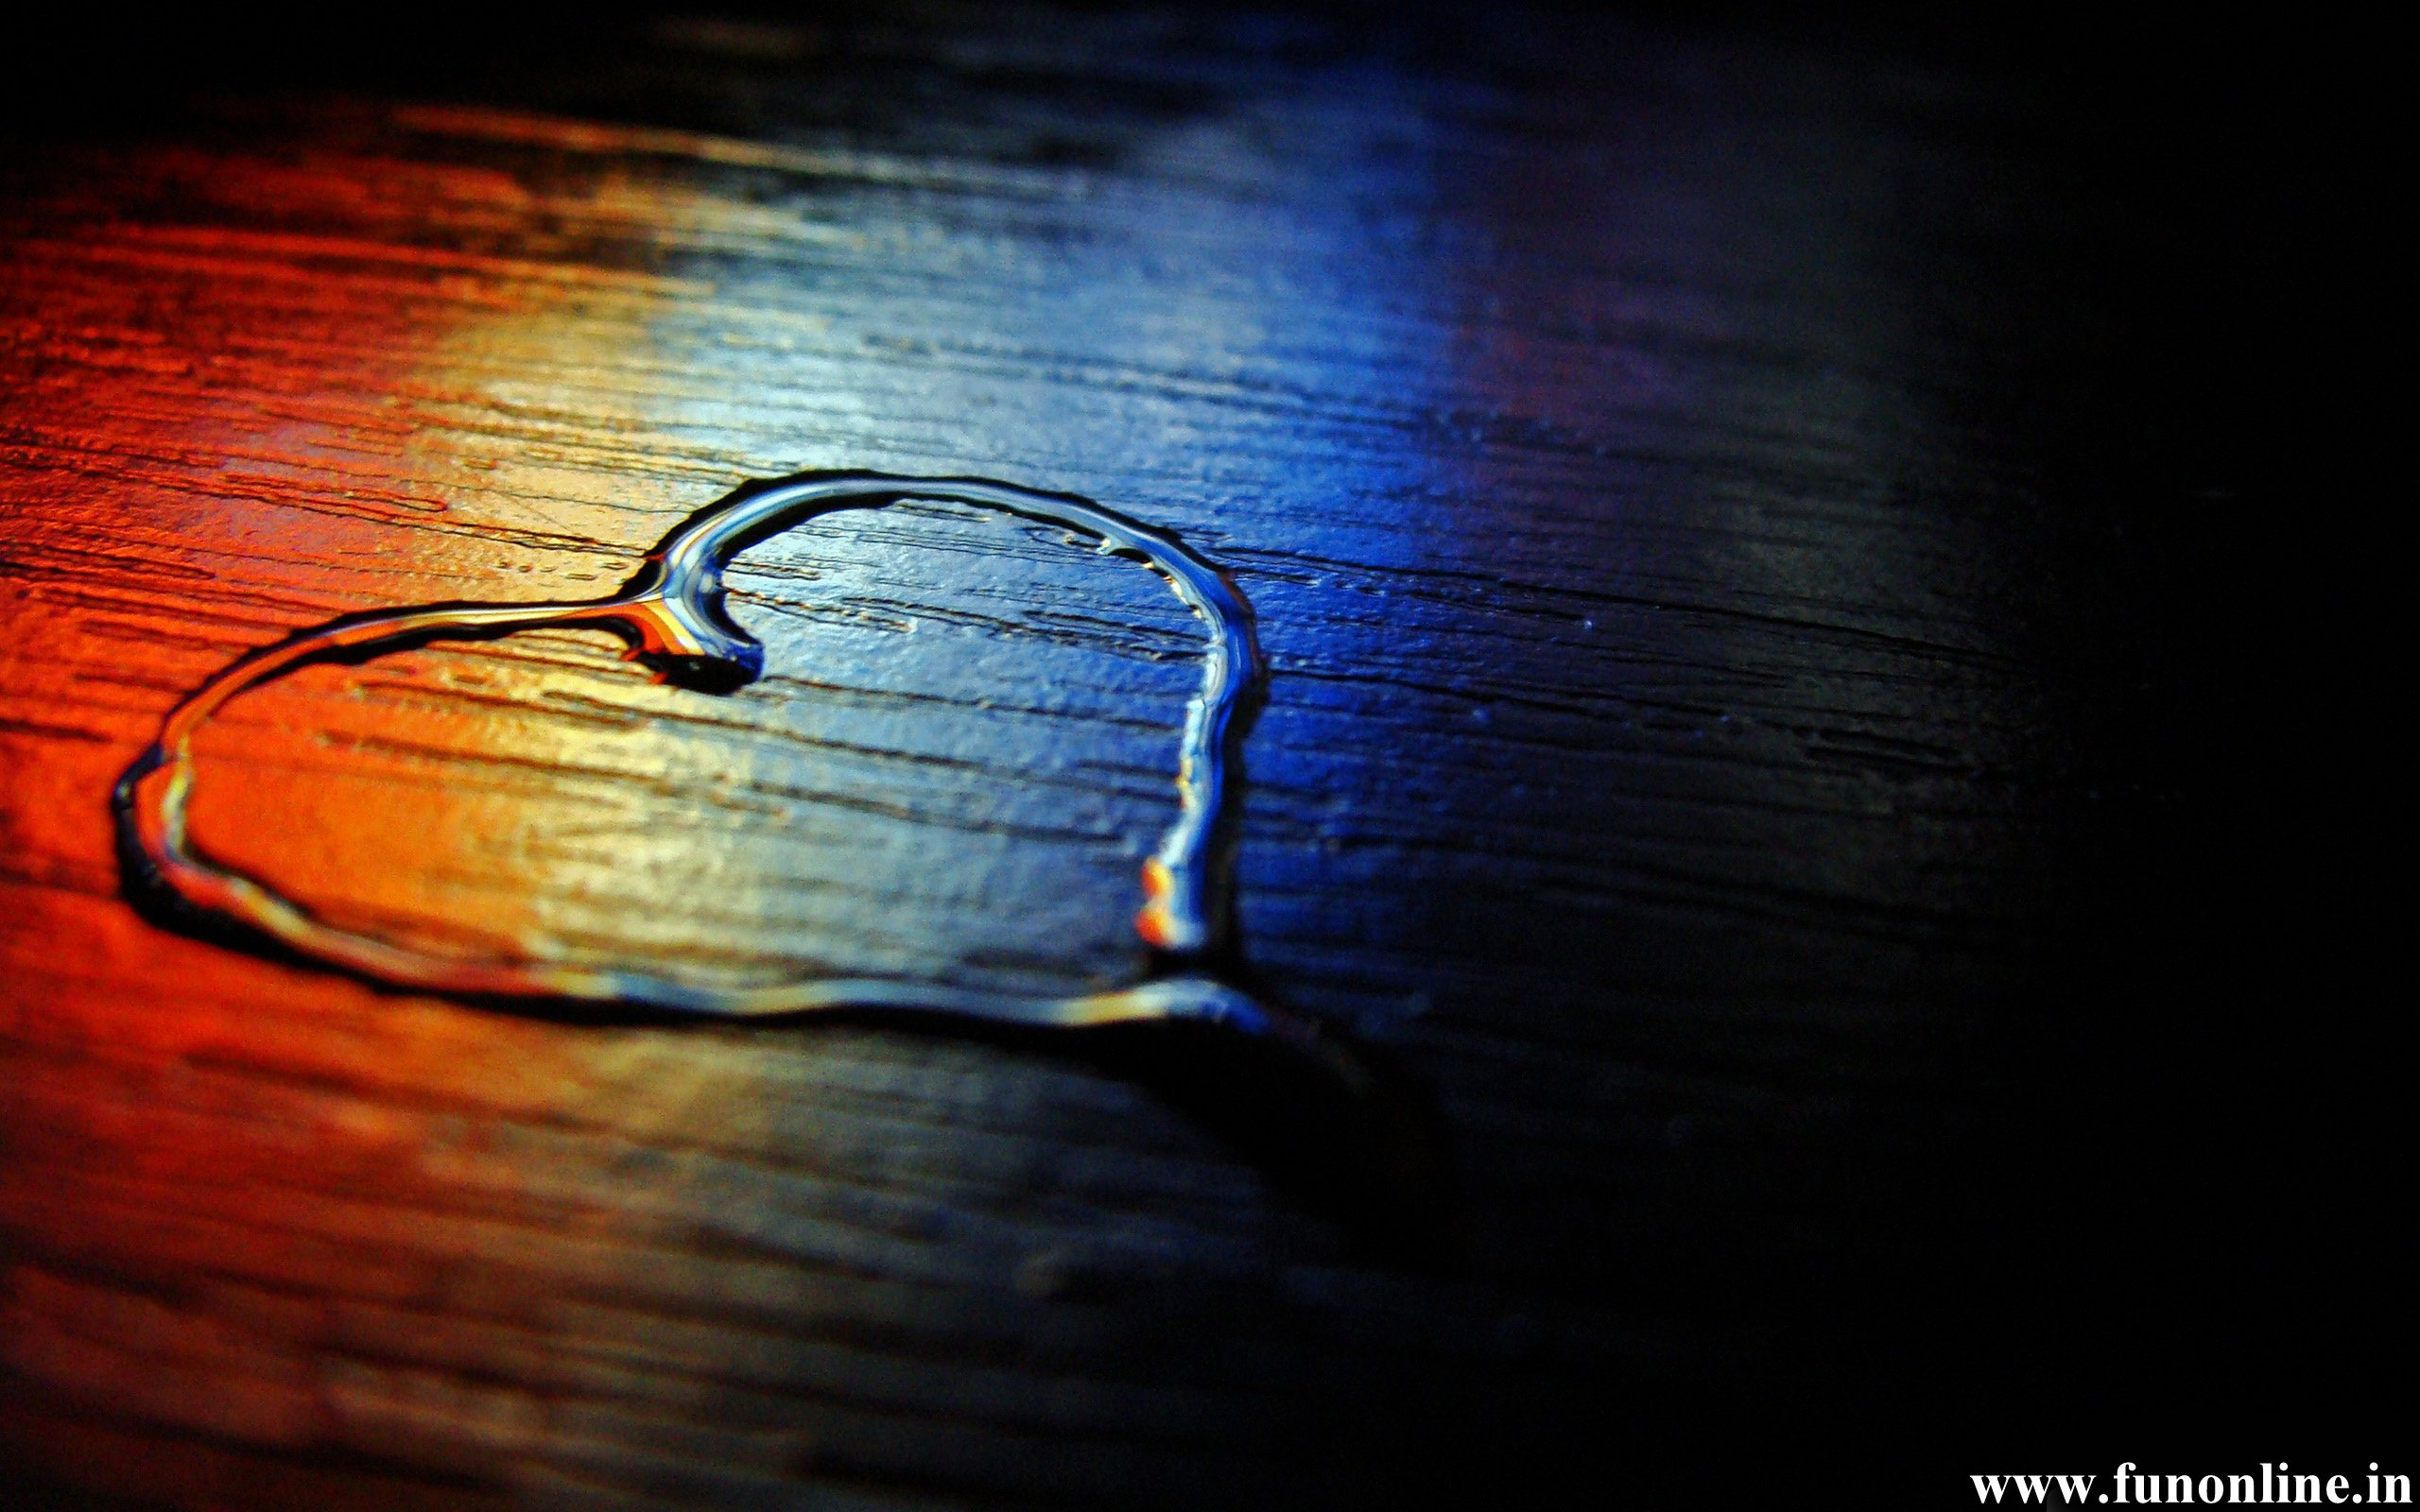 HD Love Wallpaper 1920x1080 - WallpaperSafari